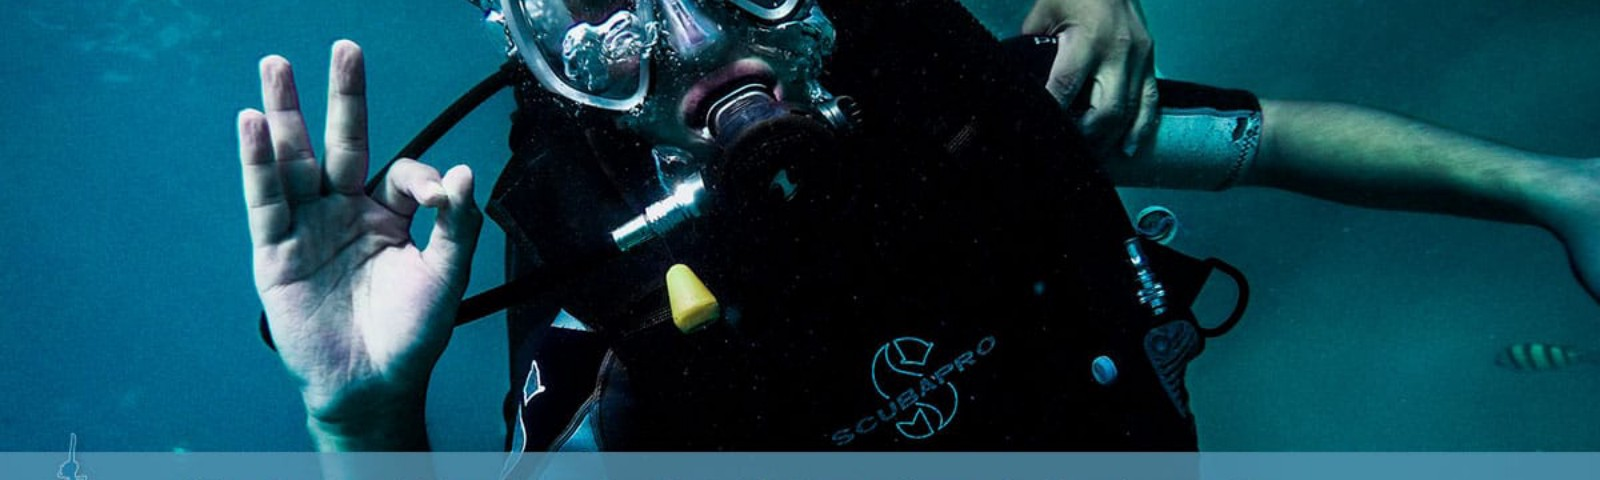 Causes and solutions for the high dropout level in the scuba diving industry